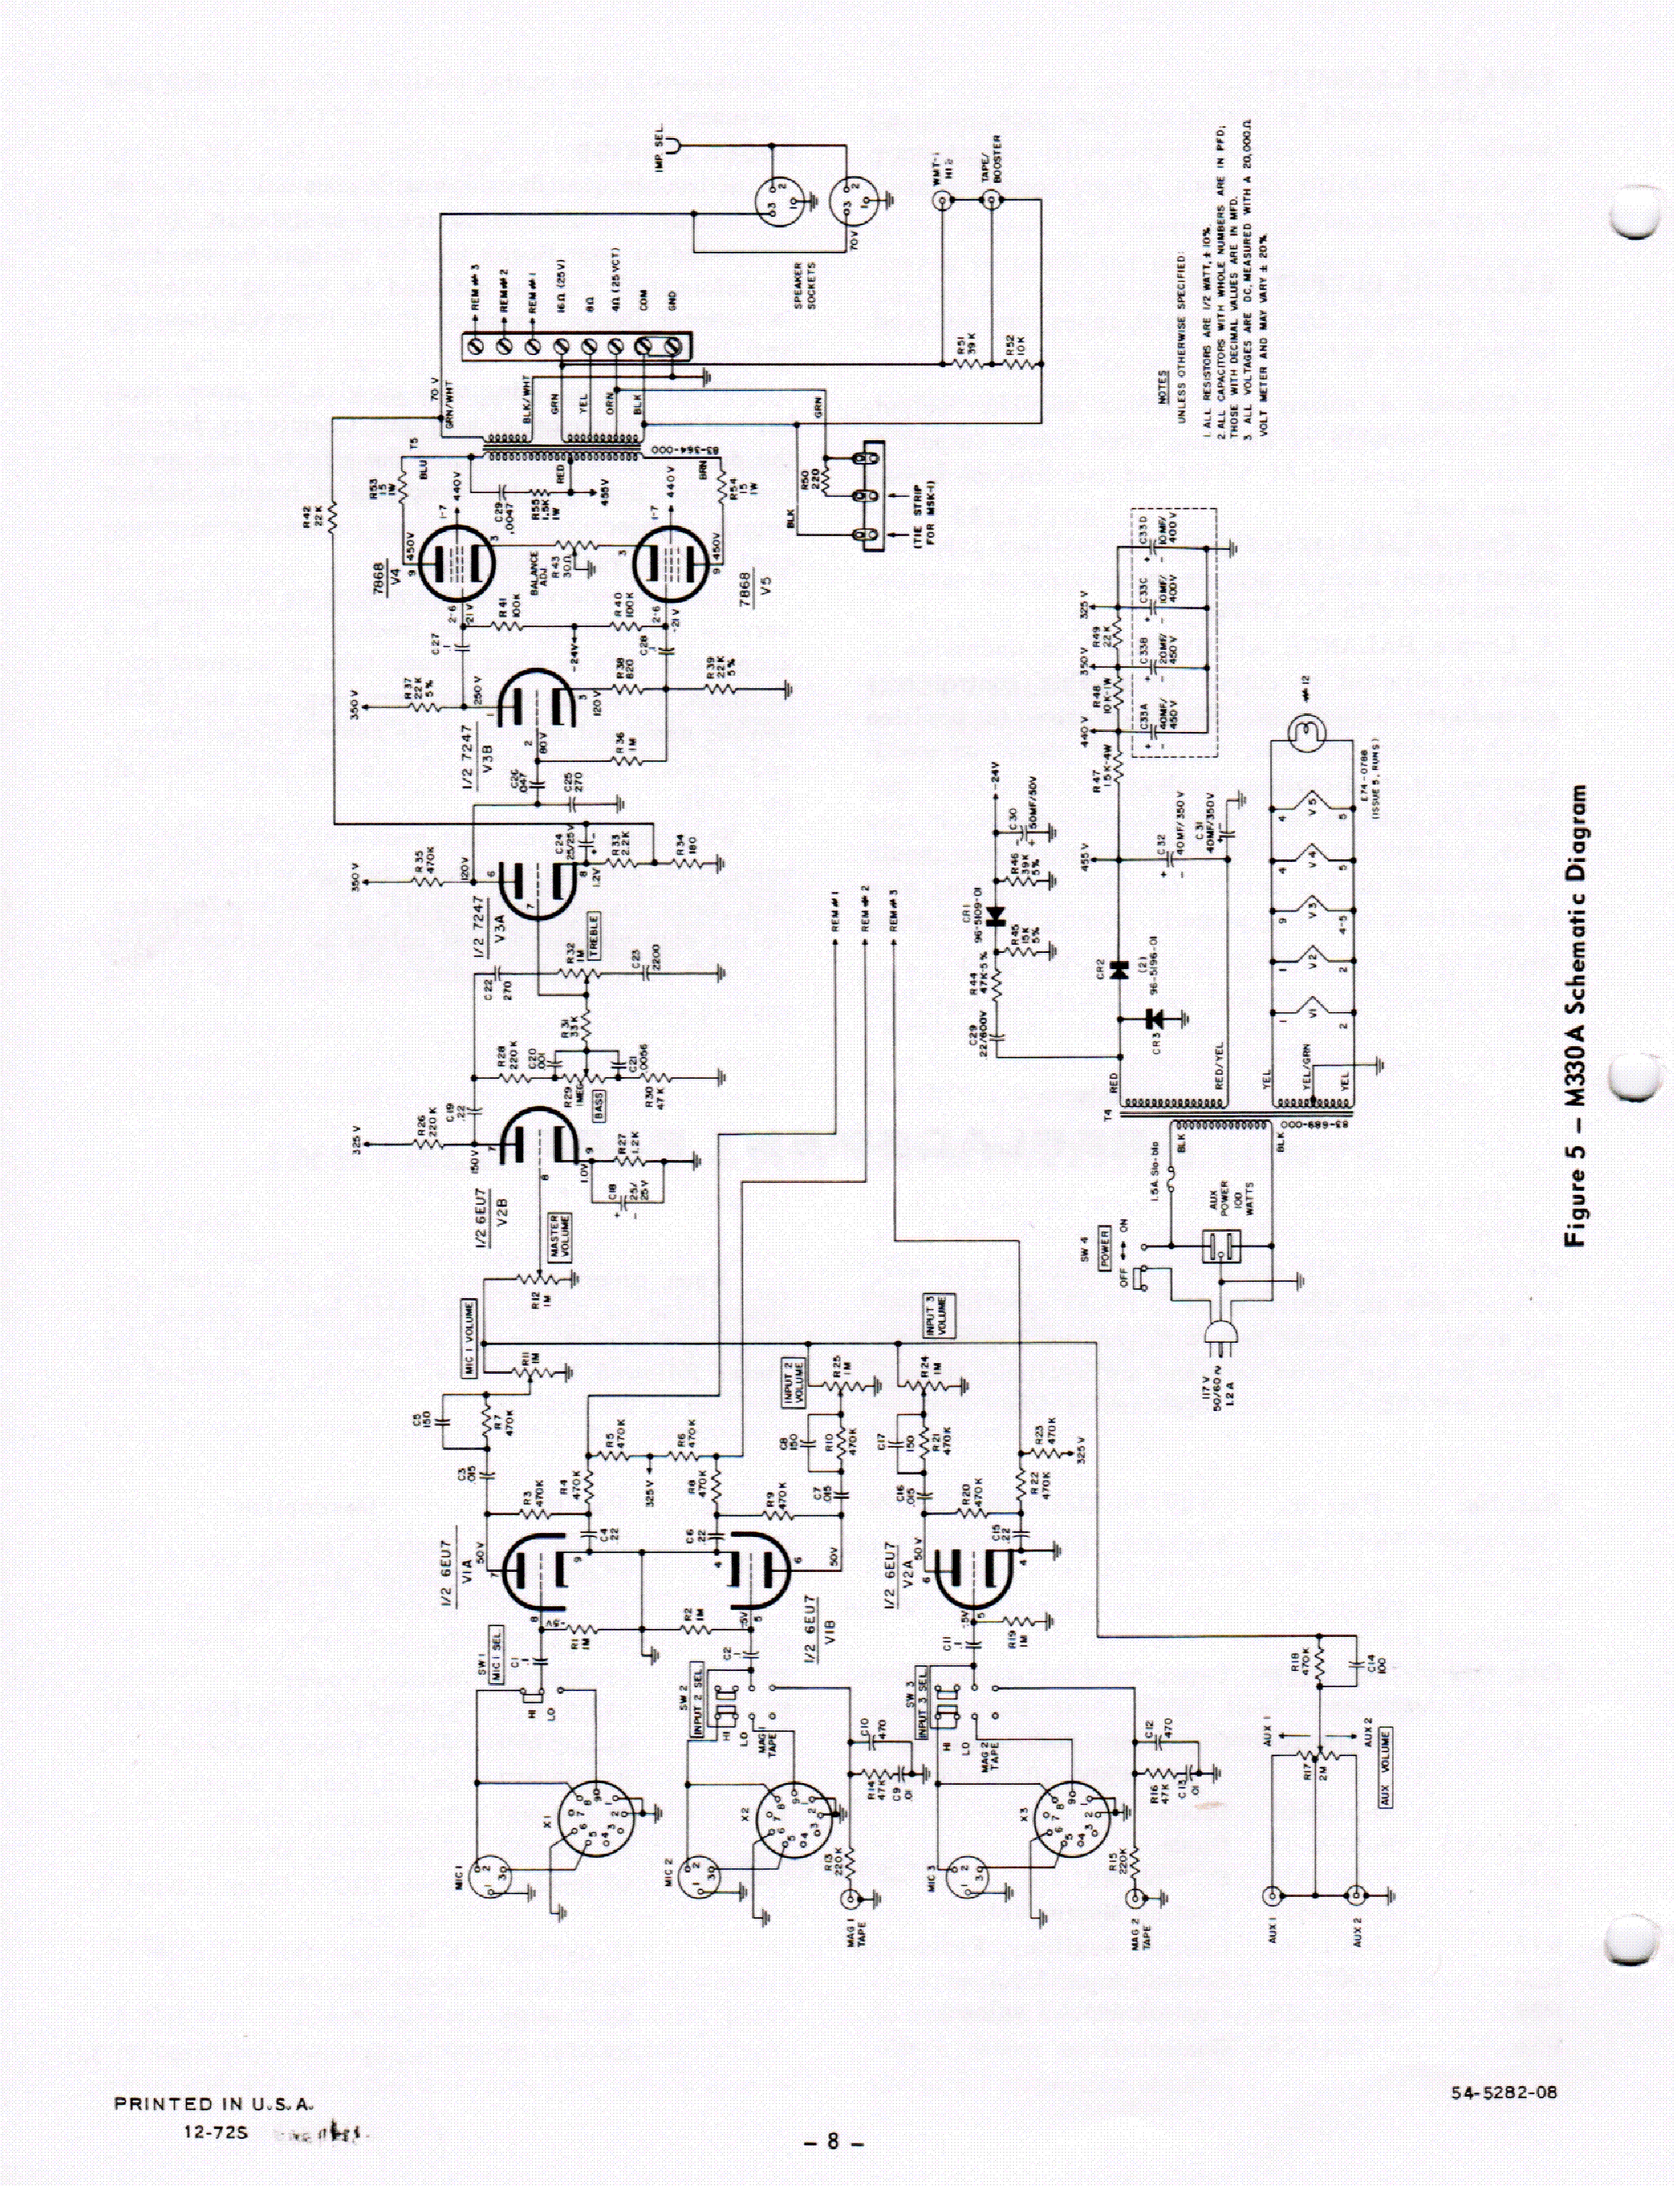 headphone jack schematic diagram